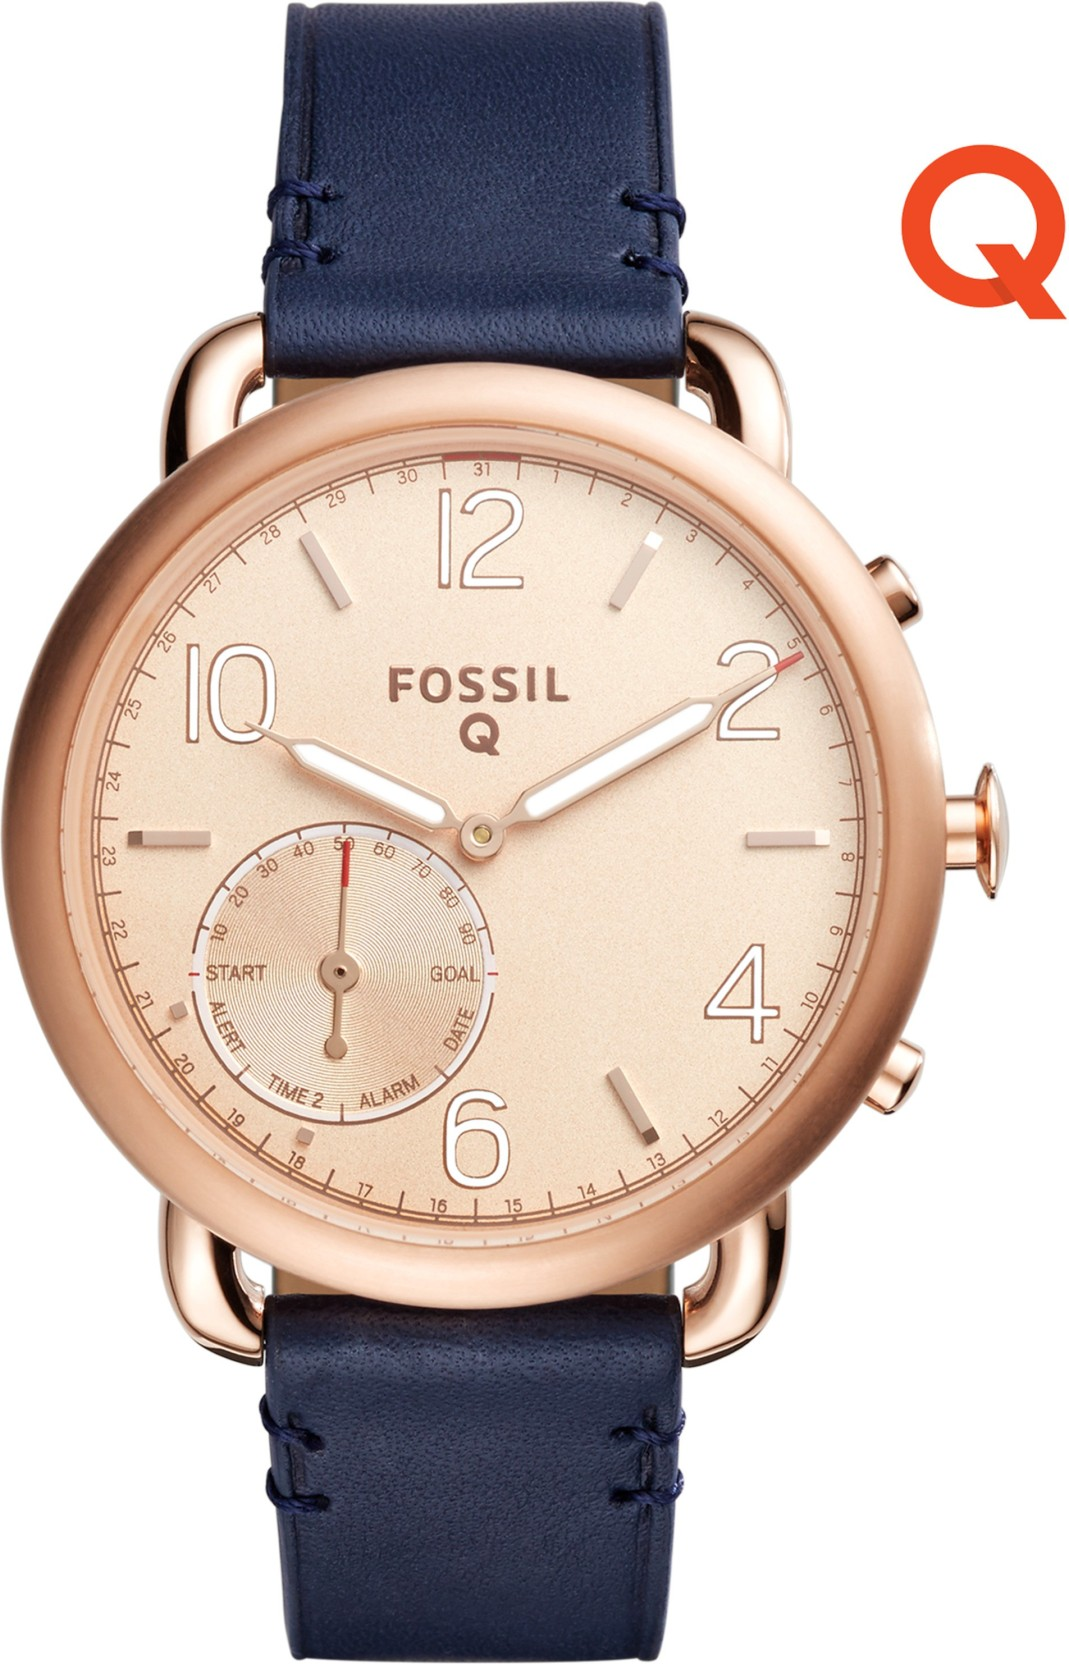 Fossil Q Tailor Hybrid (For Women) Smartwatch Price in ...